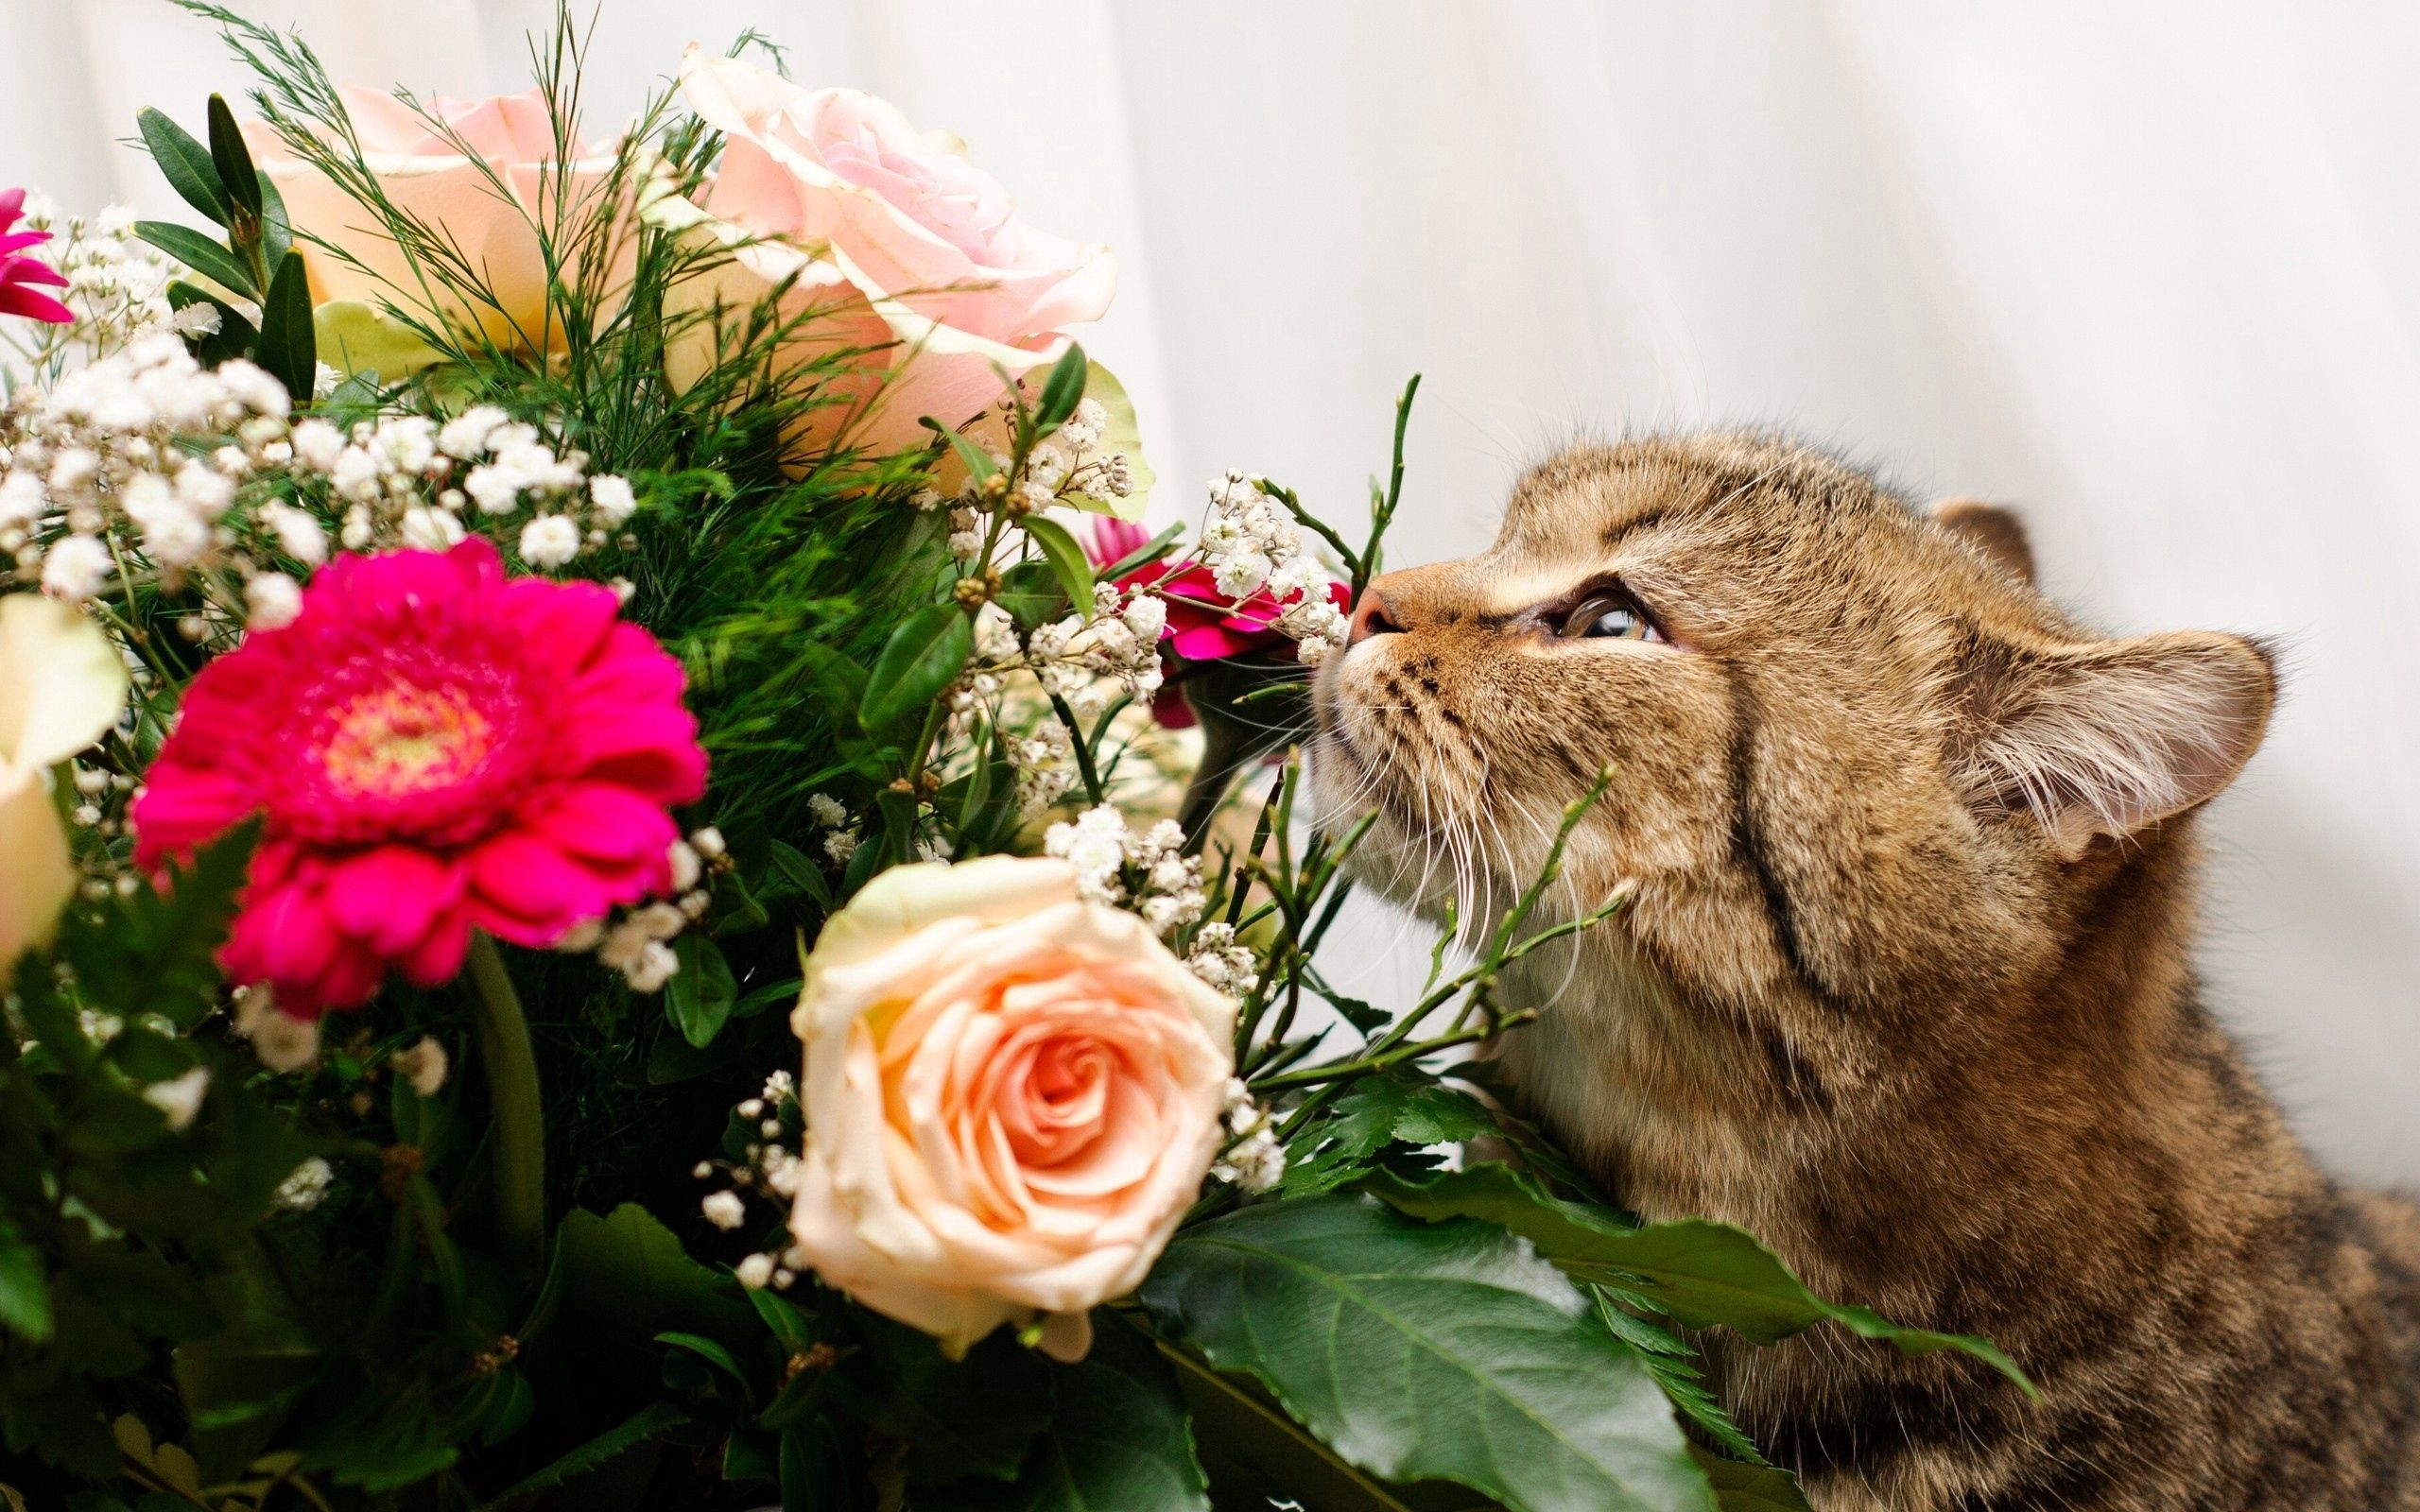 128203 download wallpaper Animals, Cat, Muzzle, Bouquet, To Sniff, Smell, Roses screensavers and pictures for free